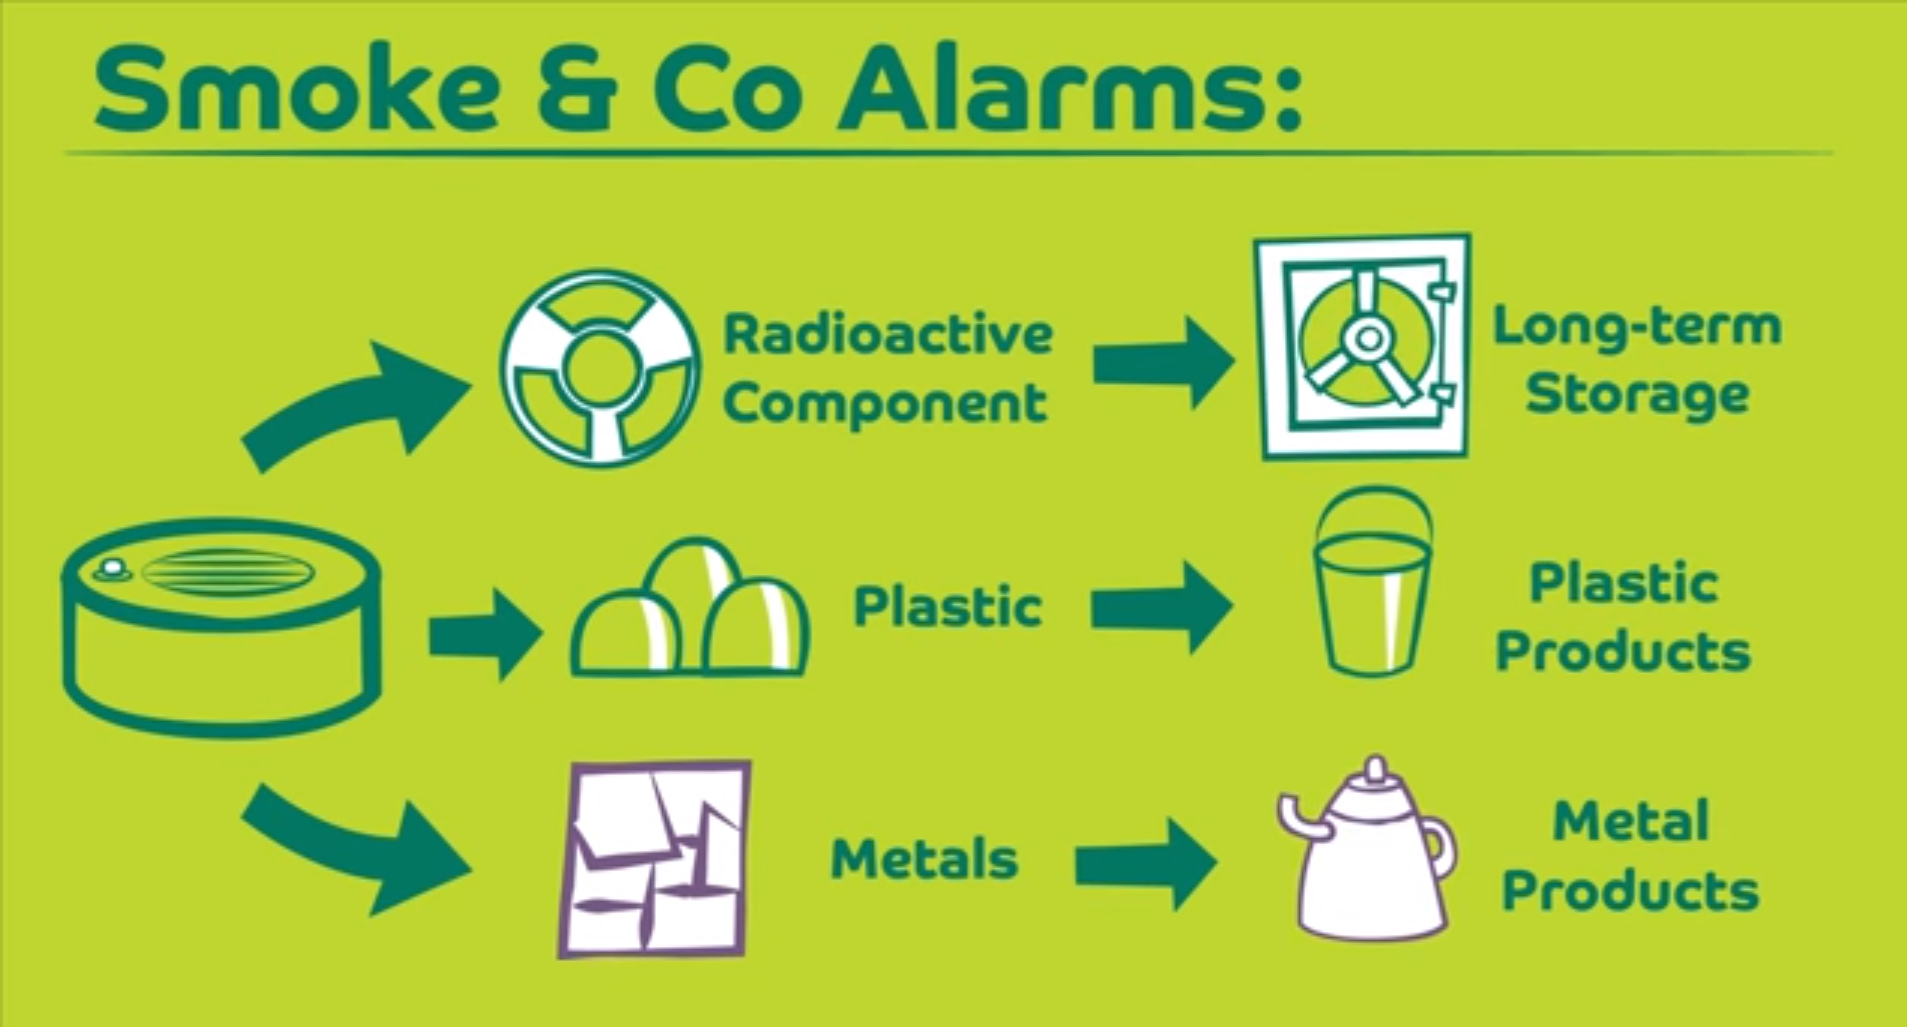 How Are Smoke Alarms Recycled?